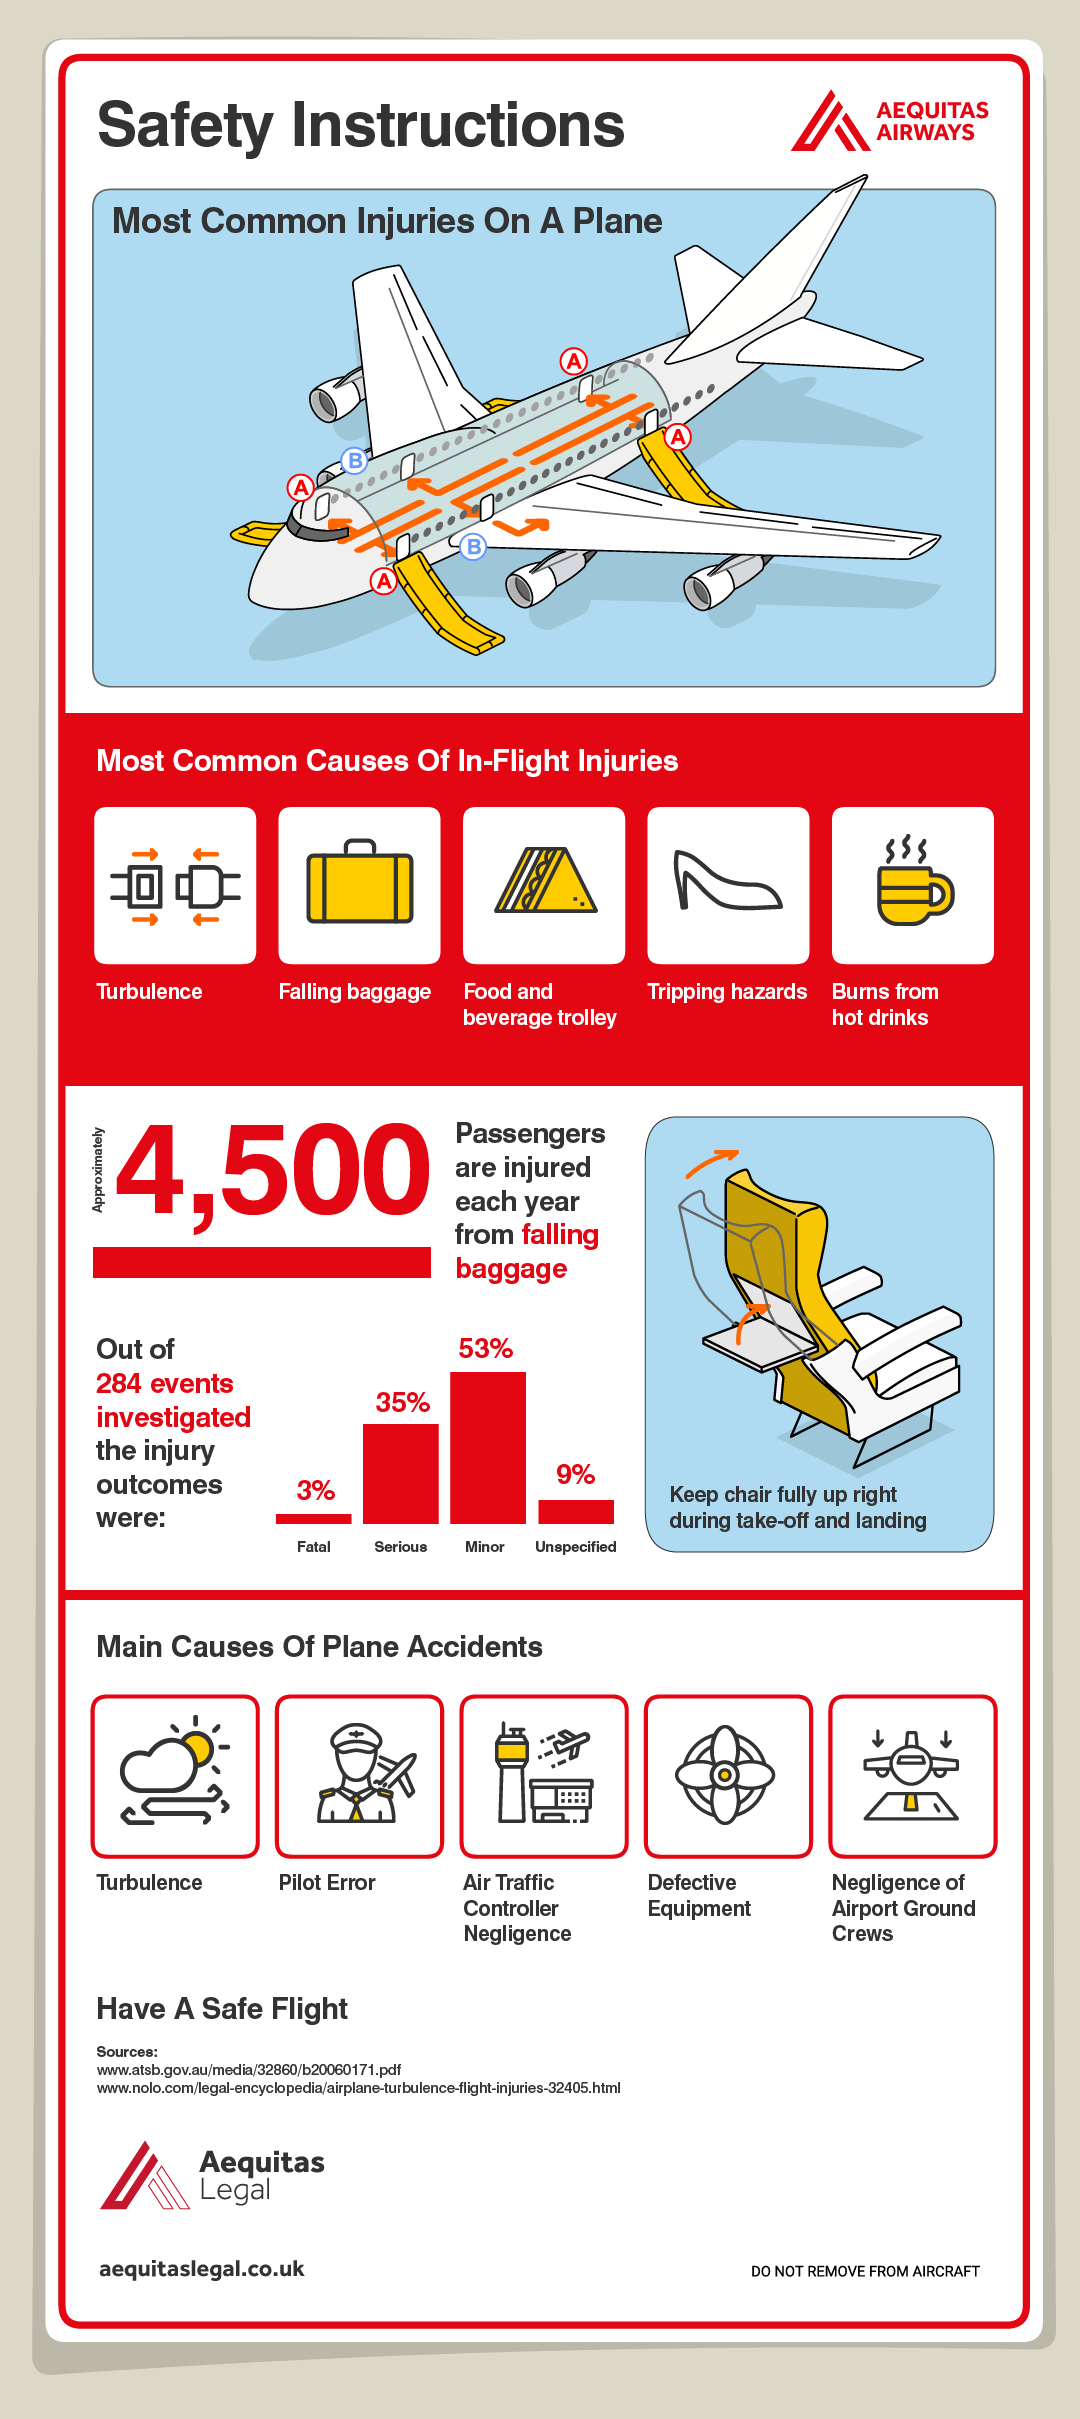 The Most Common Causes of In-flight Injuries